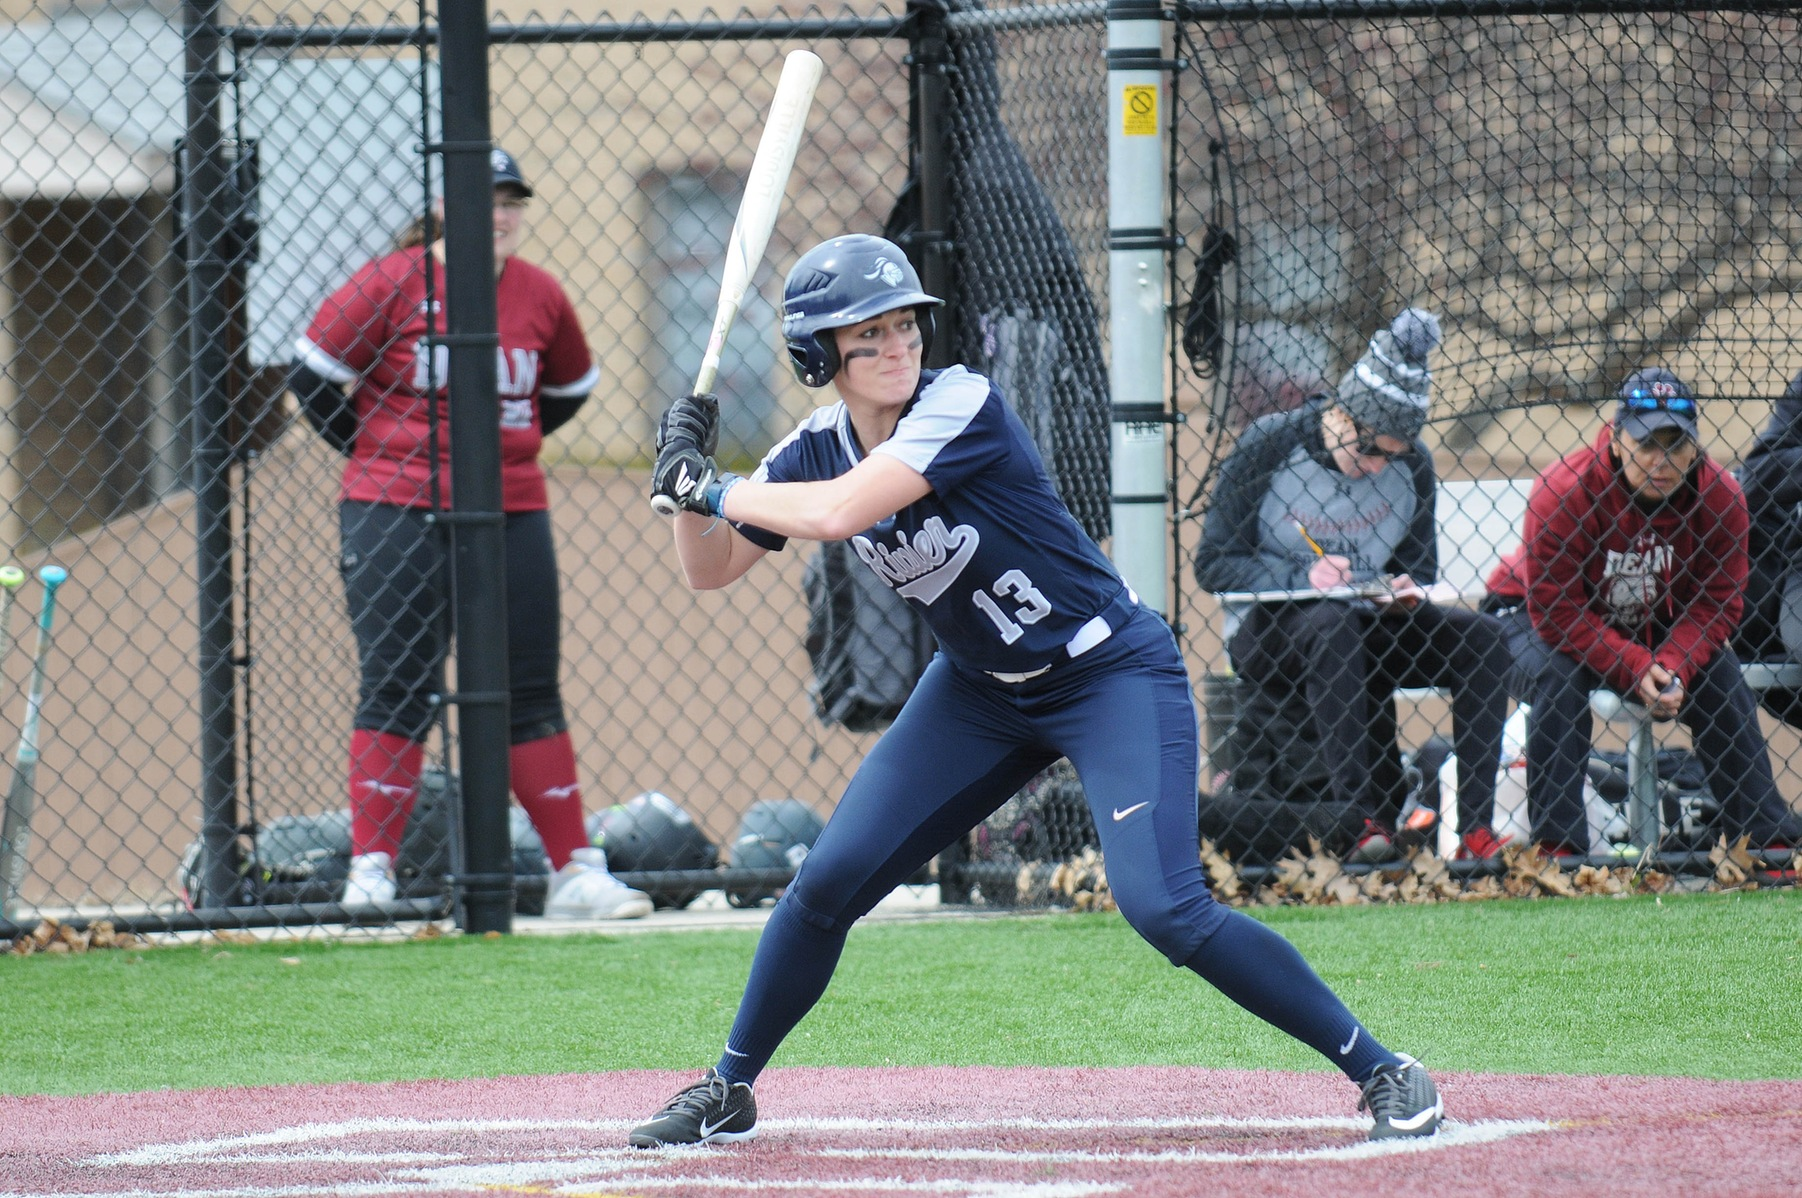 Softball: Raiders fall short in second match against the Cougars, 2-1.